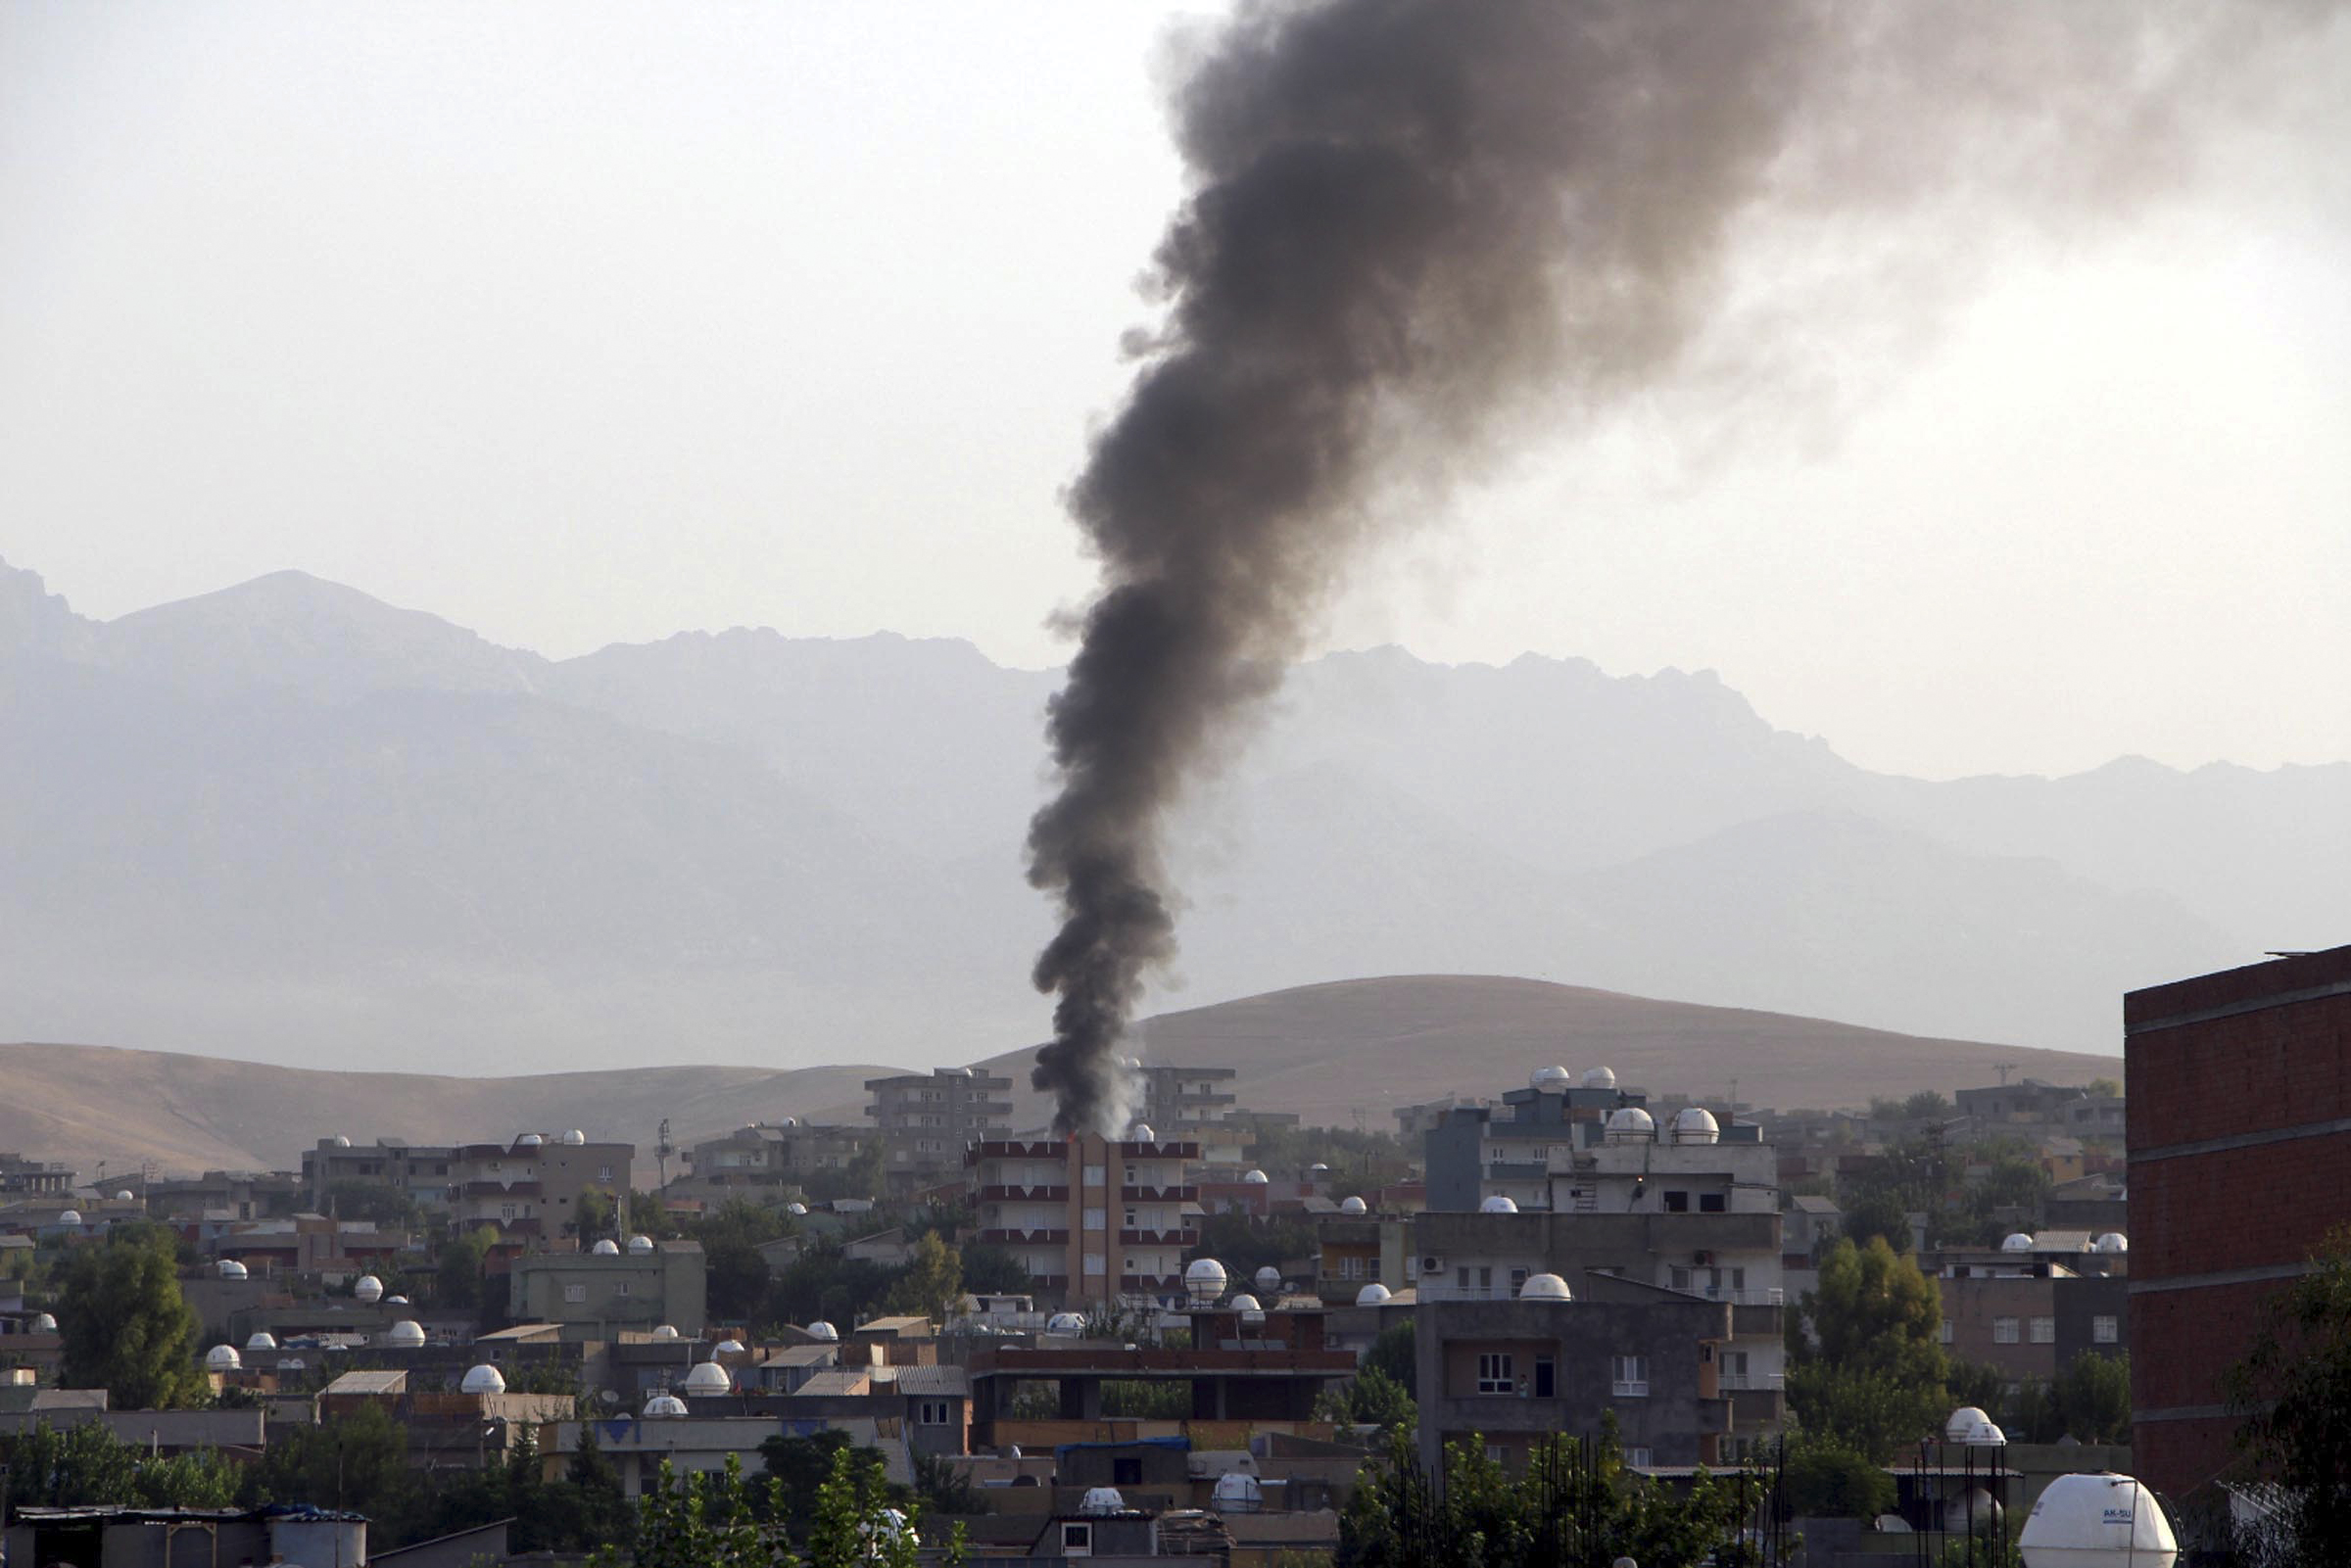 Smoke billows from a fire during firefight between the police and Kurdistan Workers' Party, or PKK militants in the town of Silopi, southeastern Turkey, July 7, 2015.